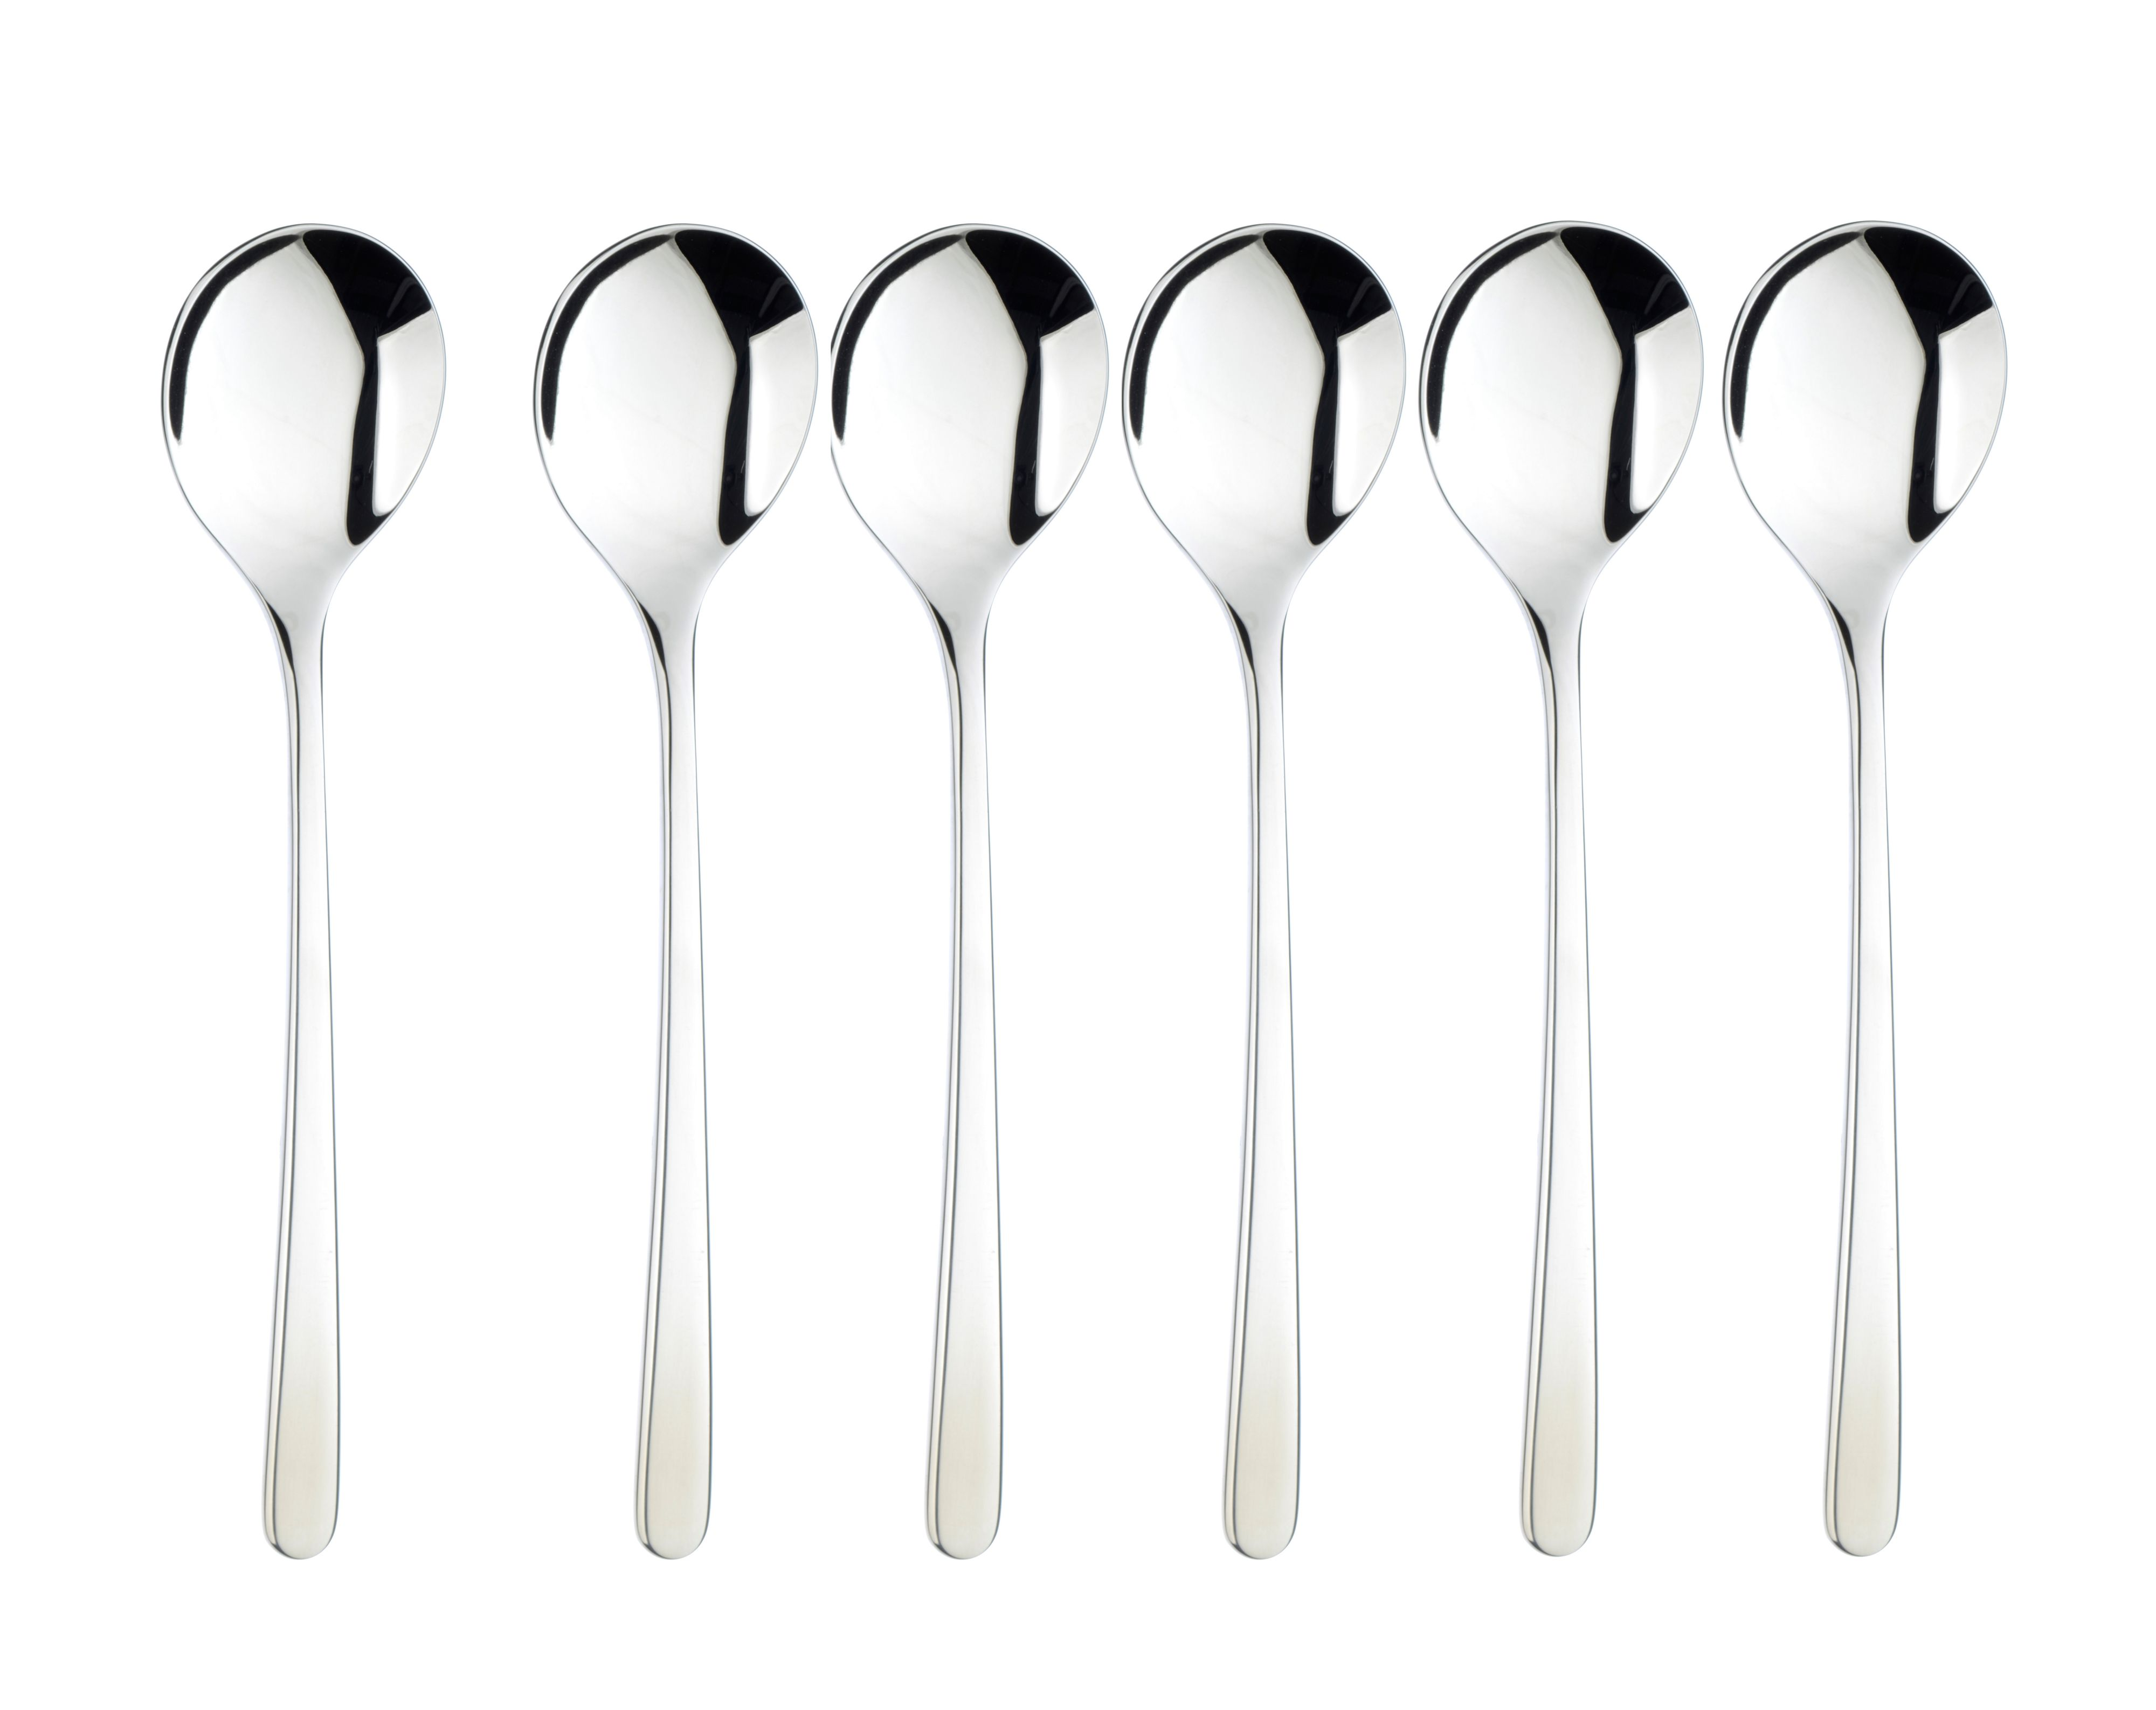 Monsoon box of 6 stainless steel latte spoons